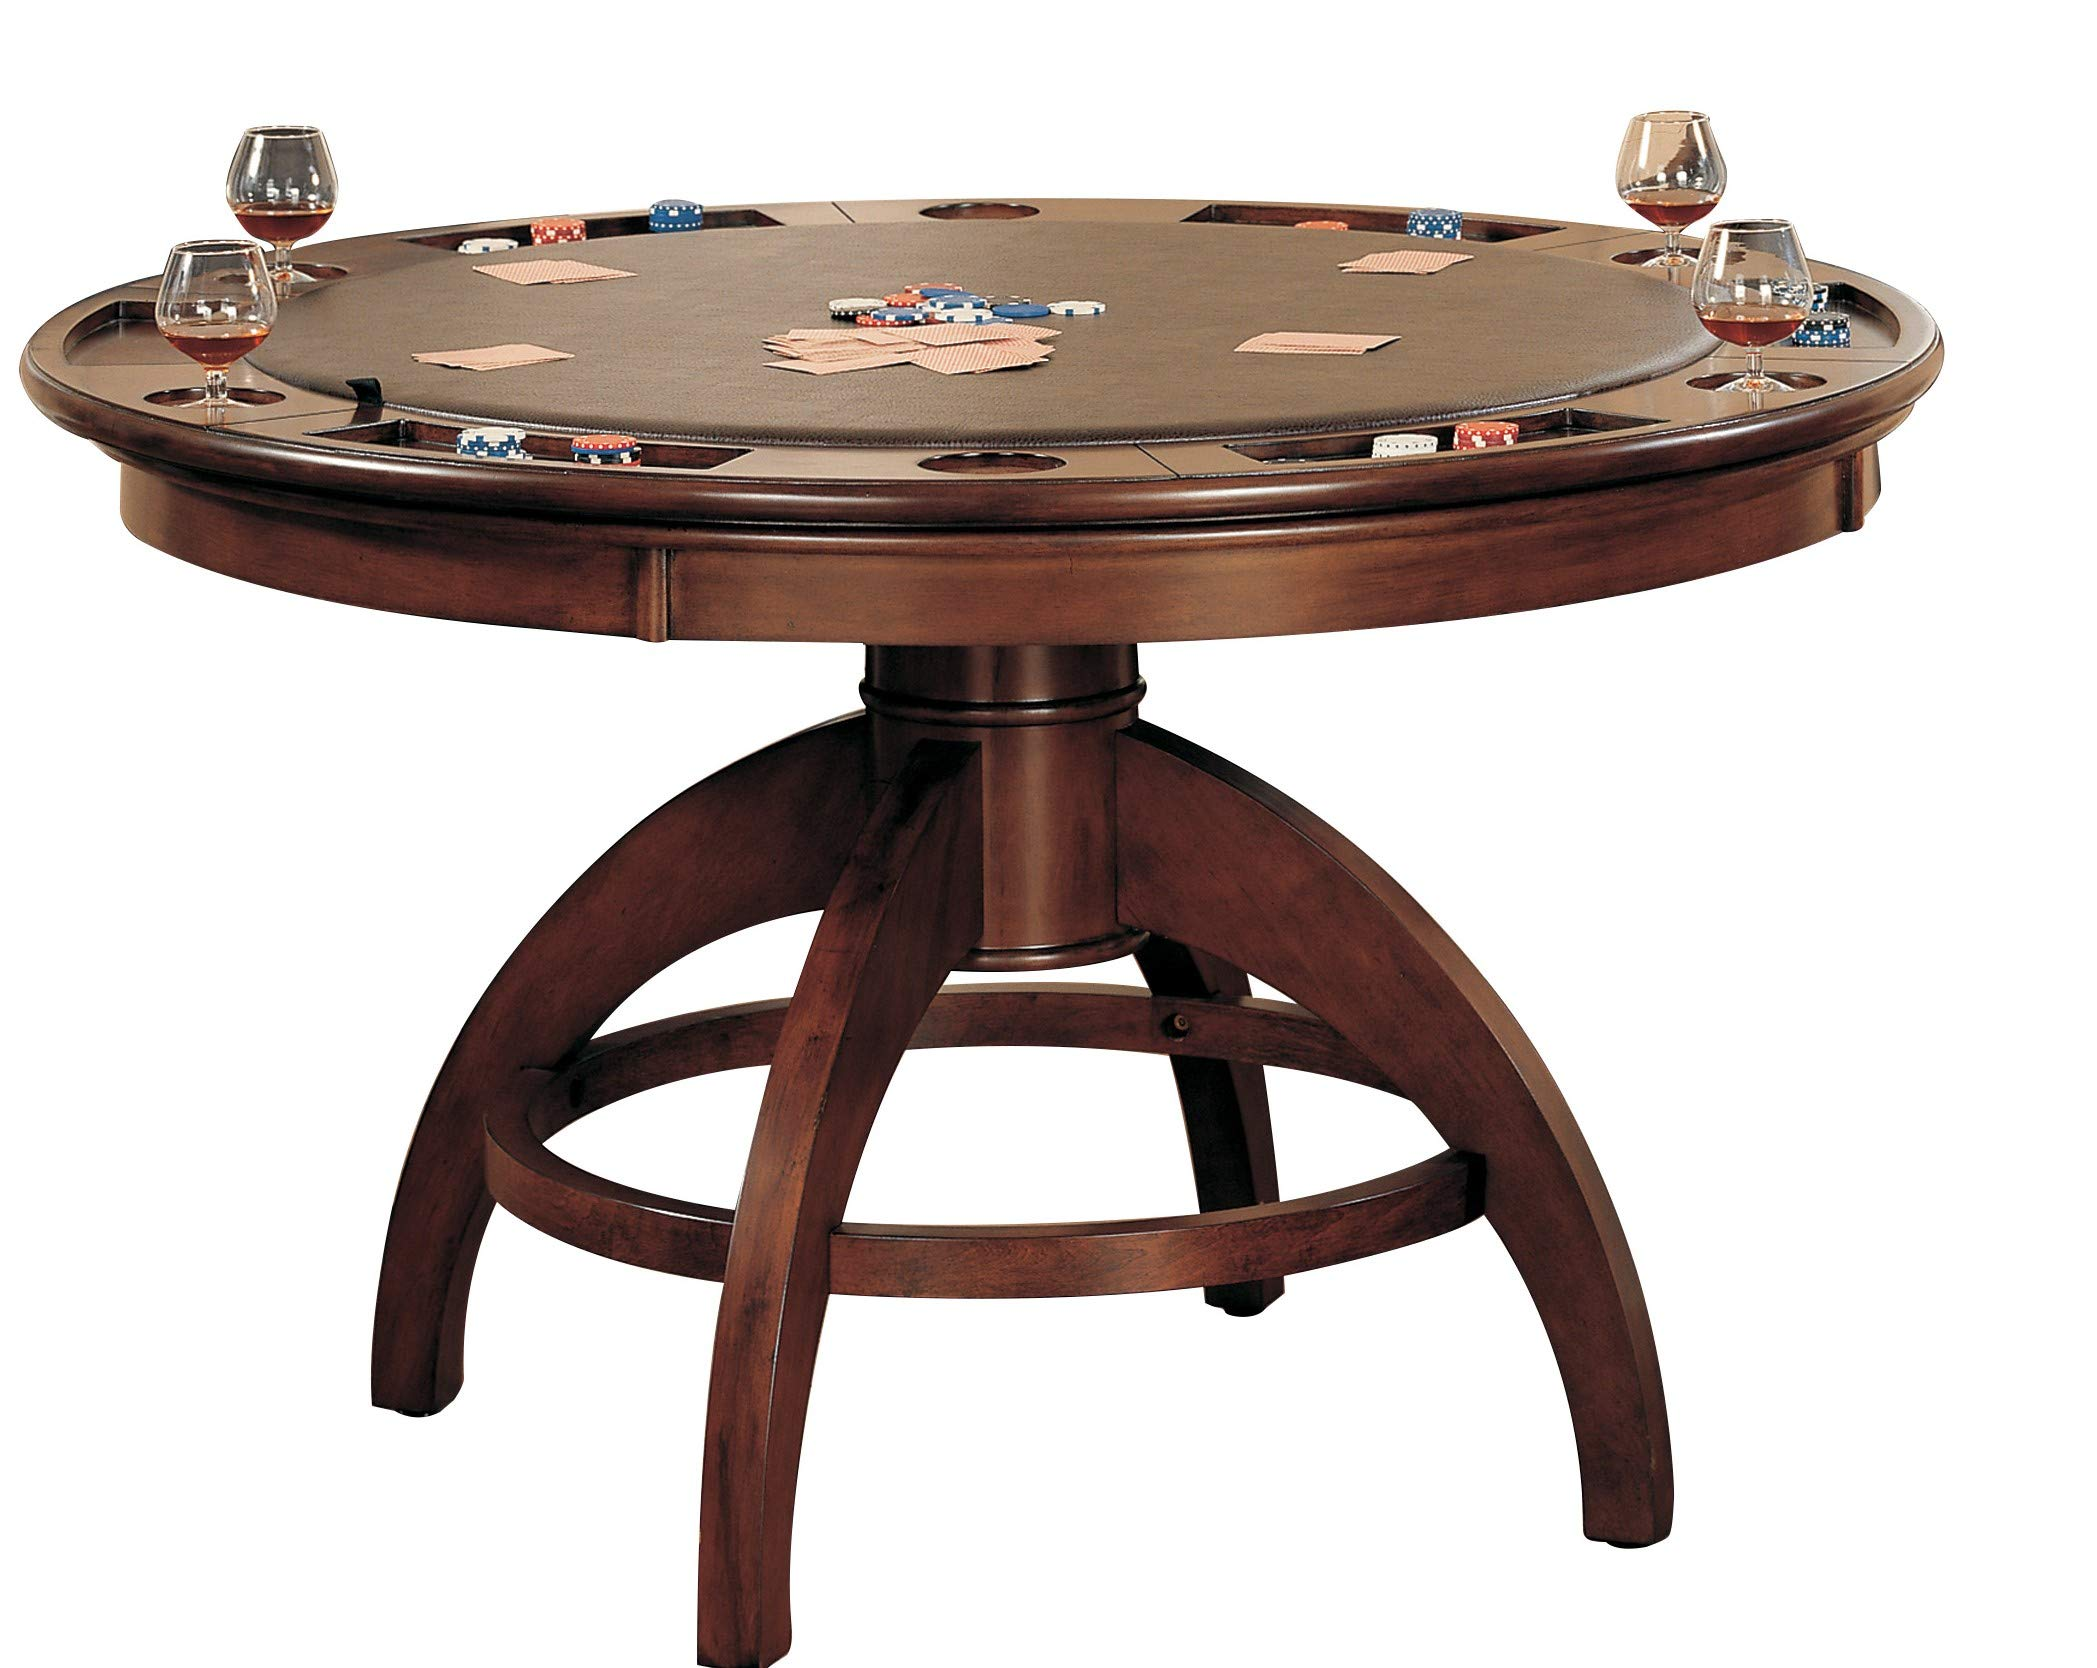 Hillsdale Furniture Palm Springs Game Table, Medium Brown Cherry by Hillsdale Furniture